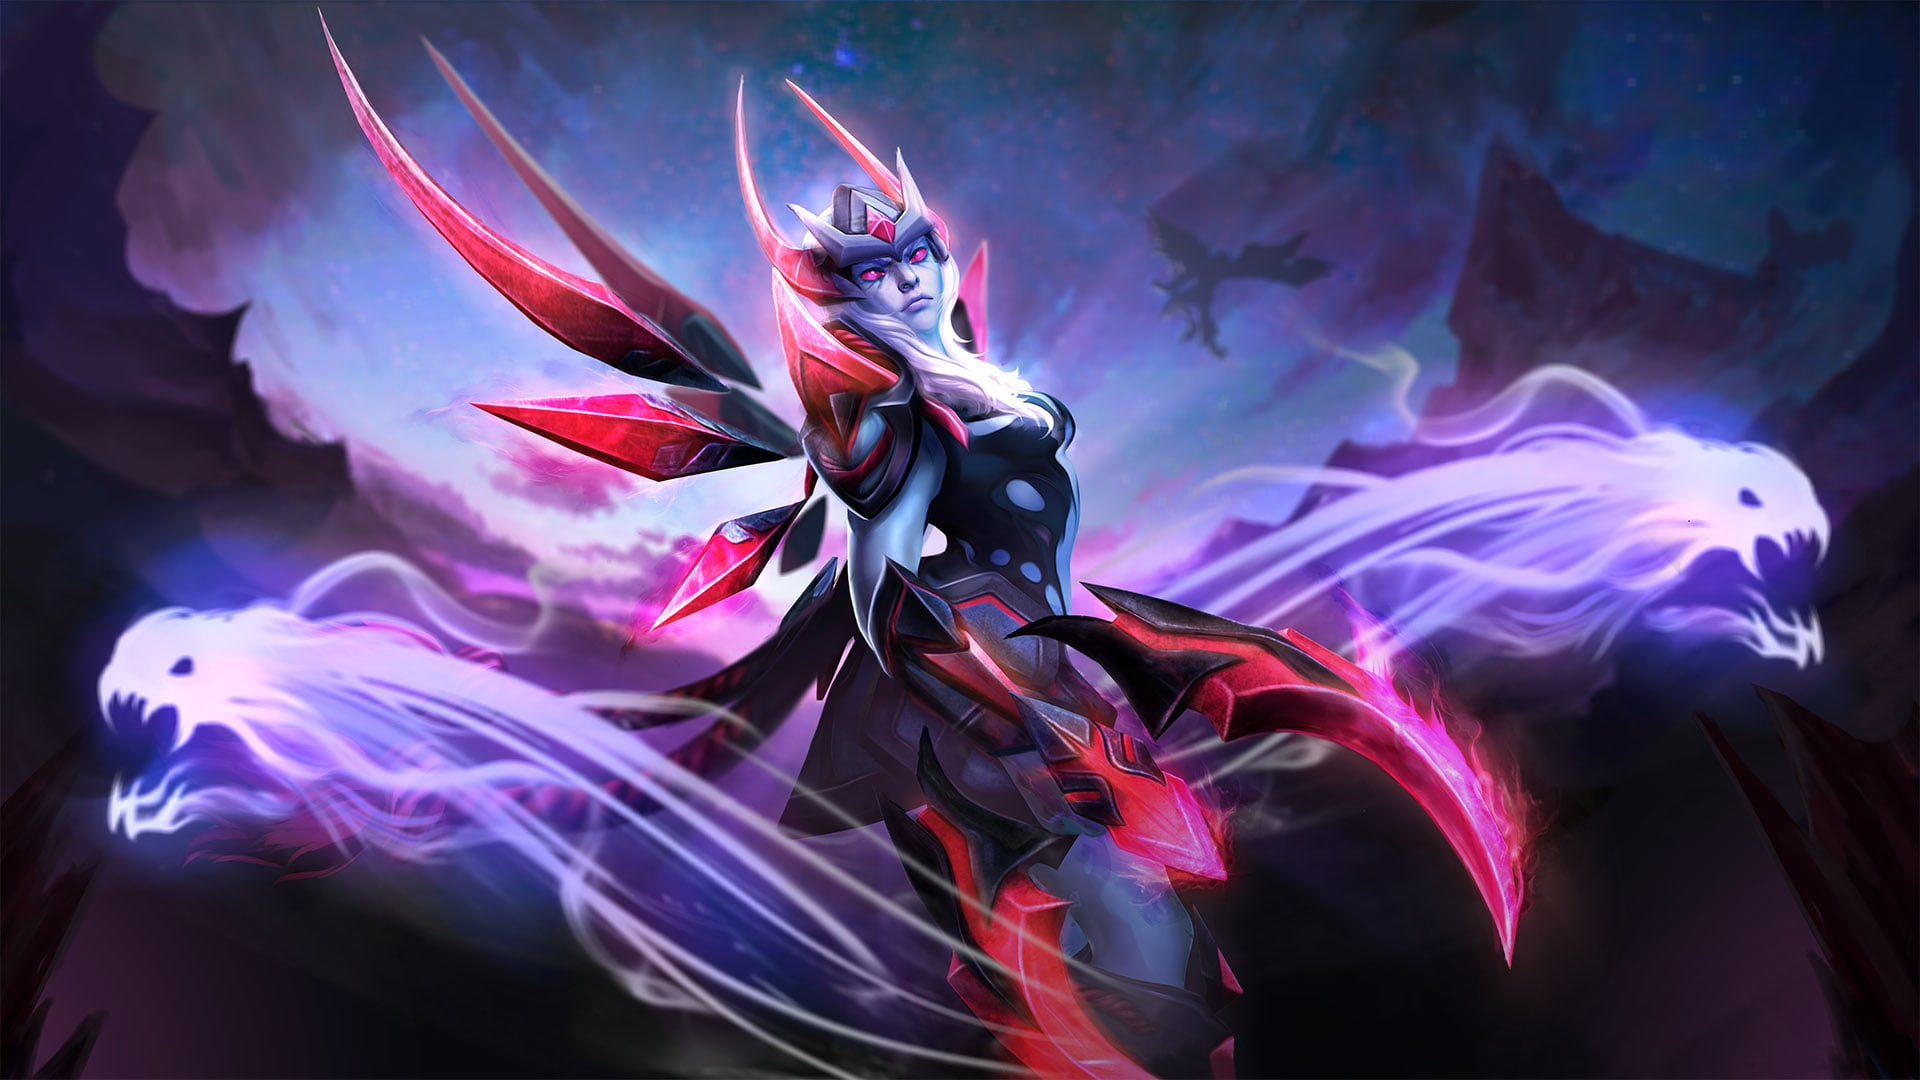 Dota2 : Vengeful Spirit widescreen for desktop